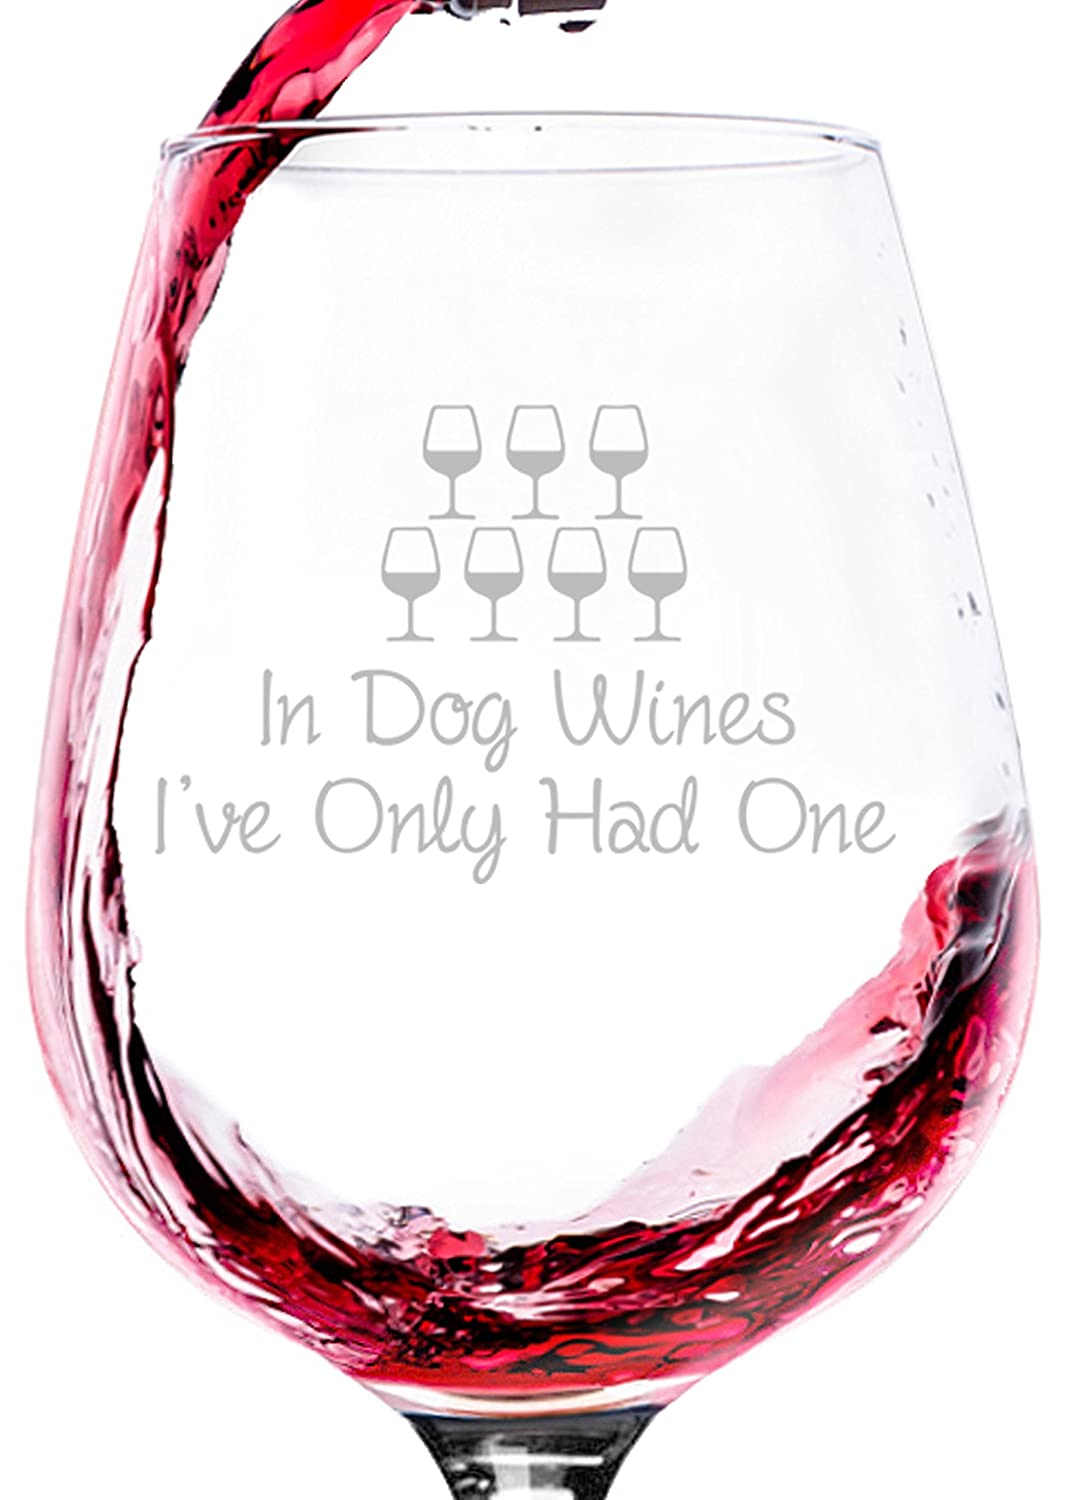 In Dog Wines Funny Wine Glass - Best Gift For Mom or Dad - Unique Fathers Day Gag Gift For Dog Lover, Women, Men - Cool Bday Present From Husband, Son, Daughter - Fun Novelty Glass For Wife, Friend